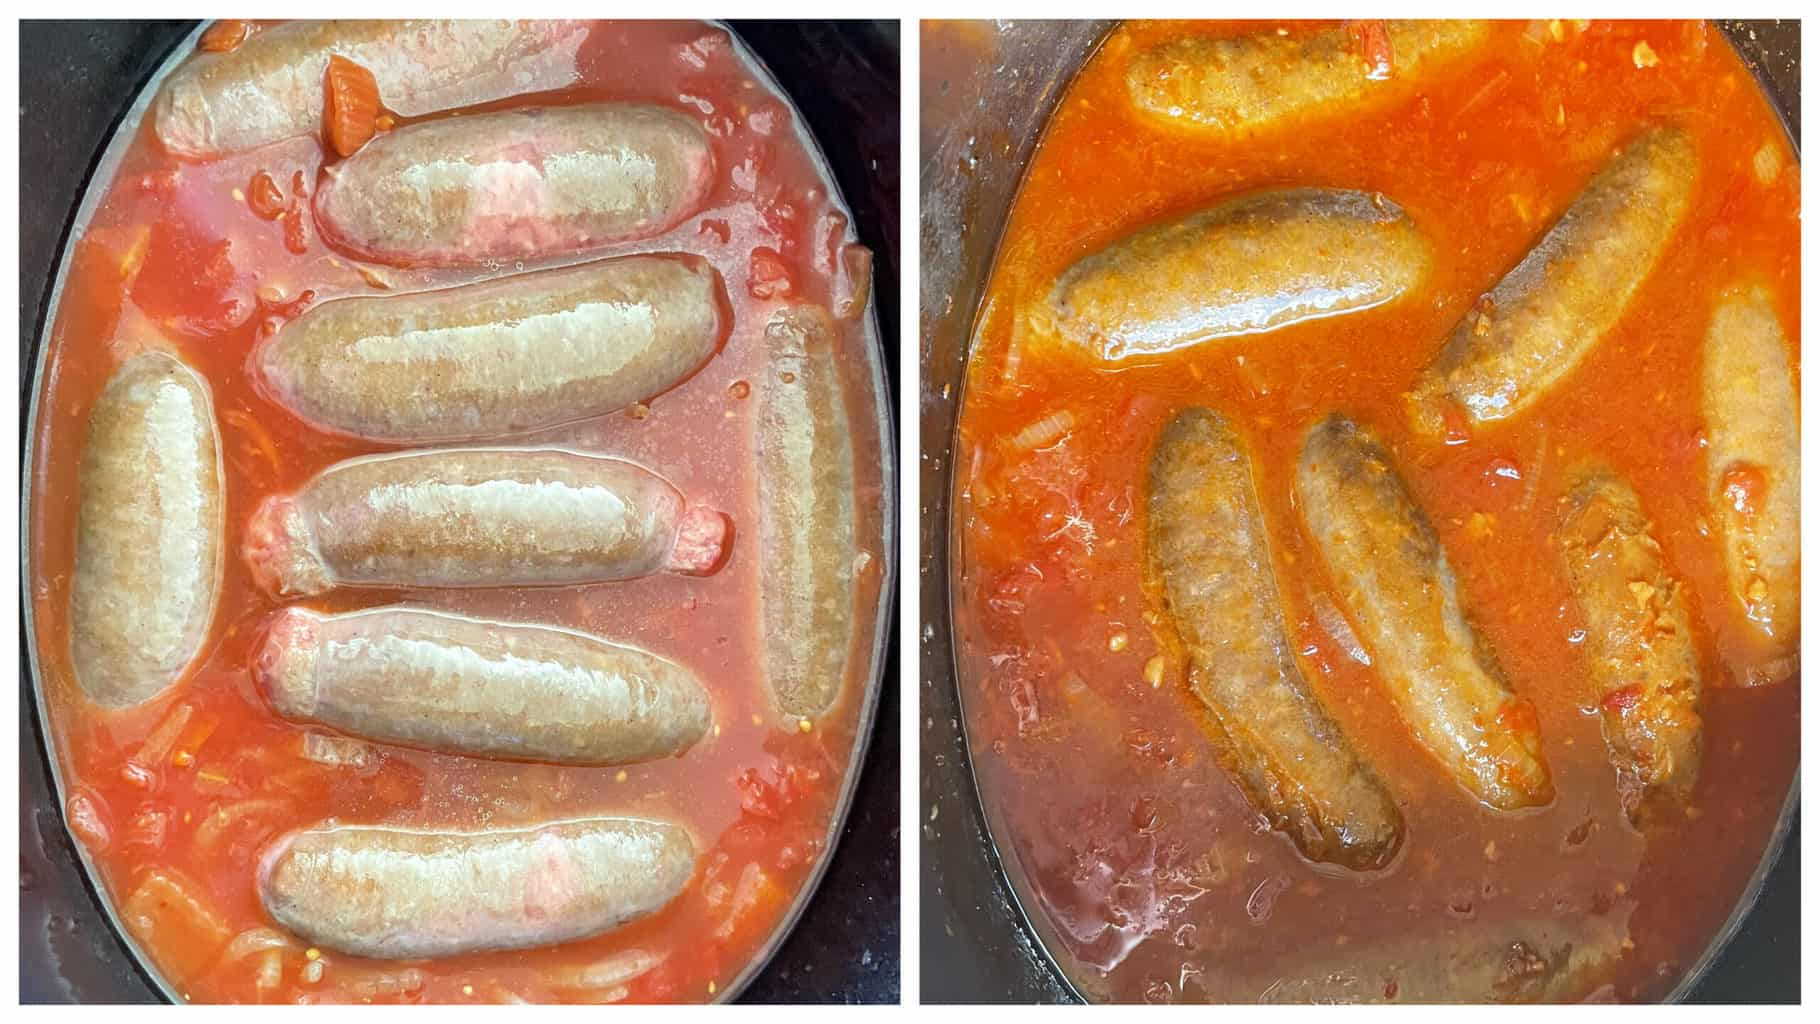 Lee Kum Kee Tangy Devilled Sausages before and after slow cooking